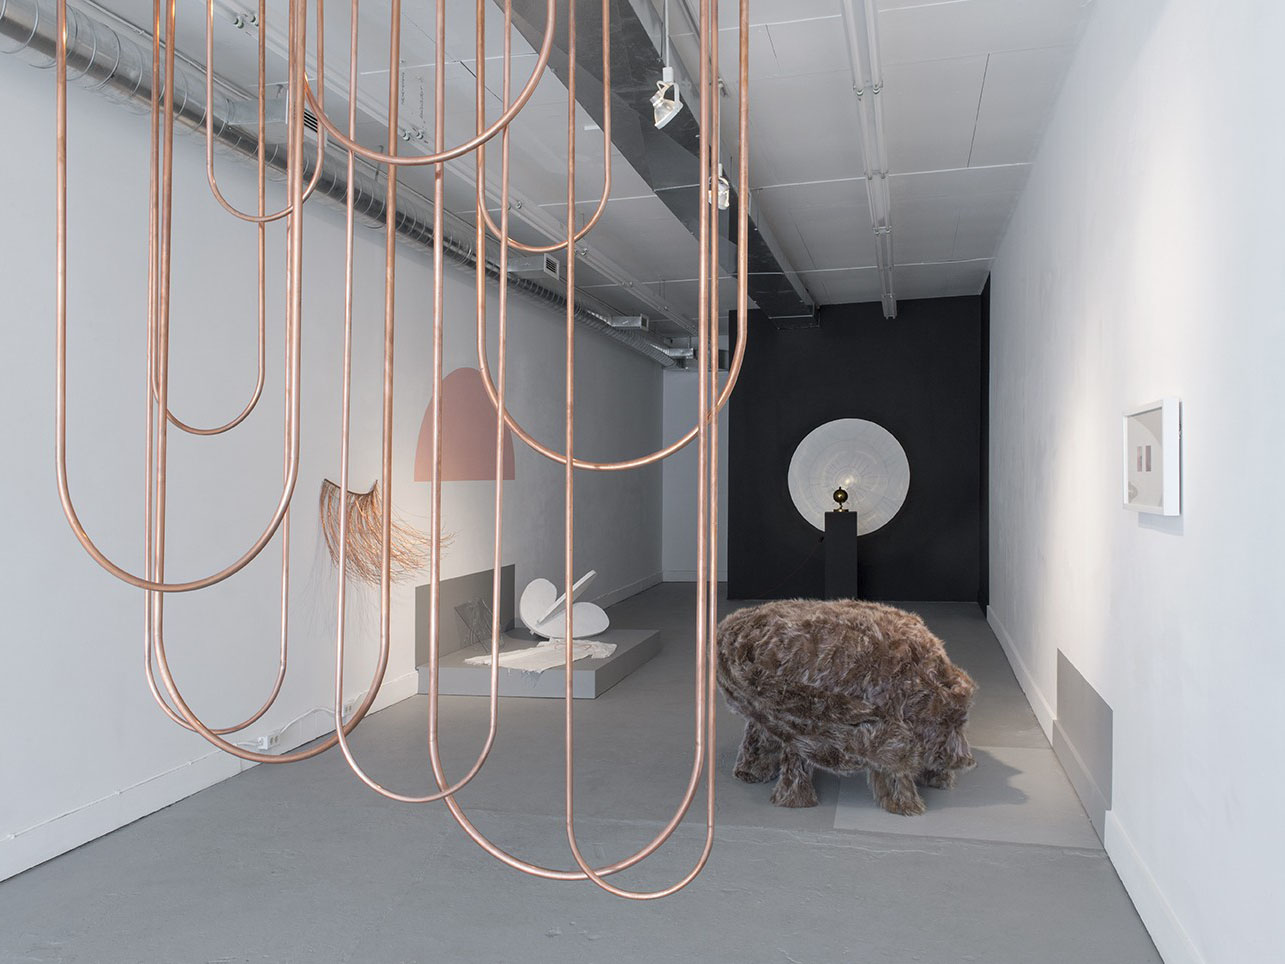 Kara Hamilton, Wane Awareless & Lifted, installation view, 2015–2016.